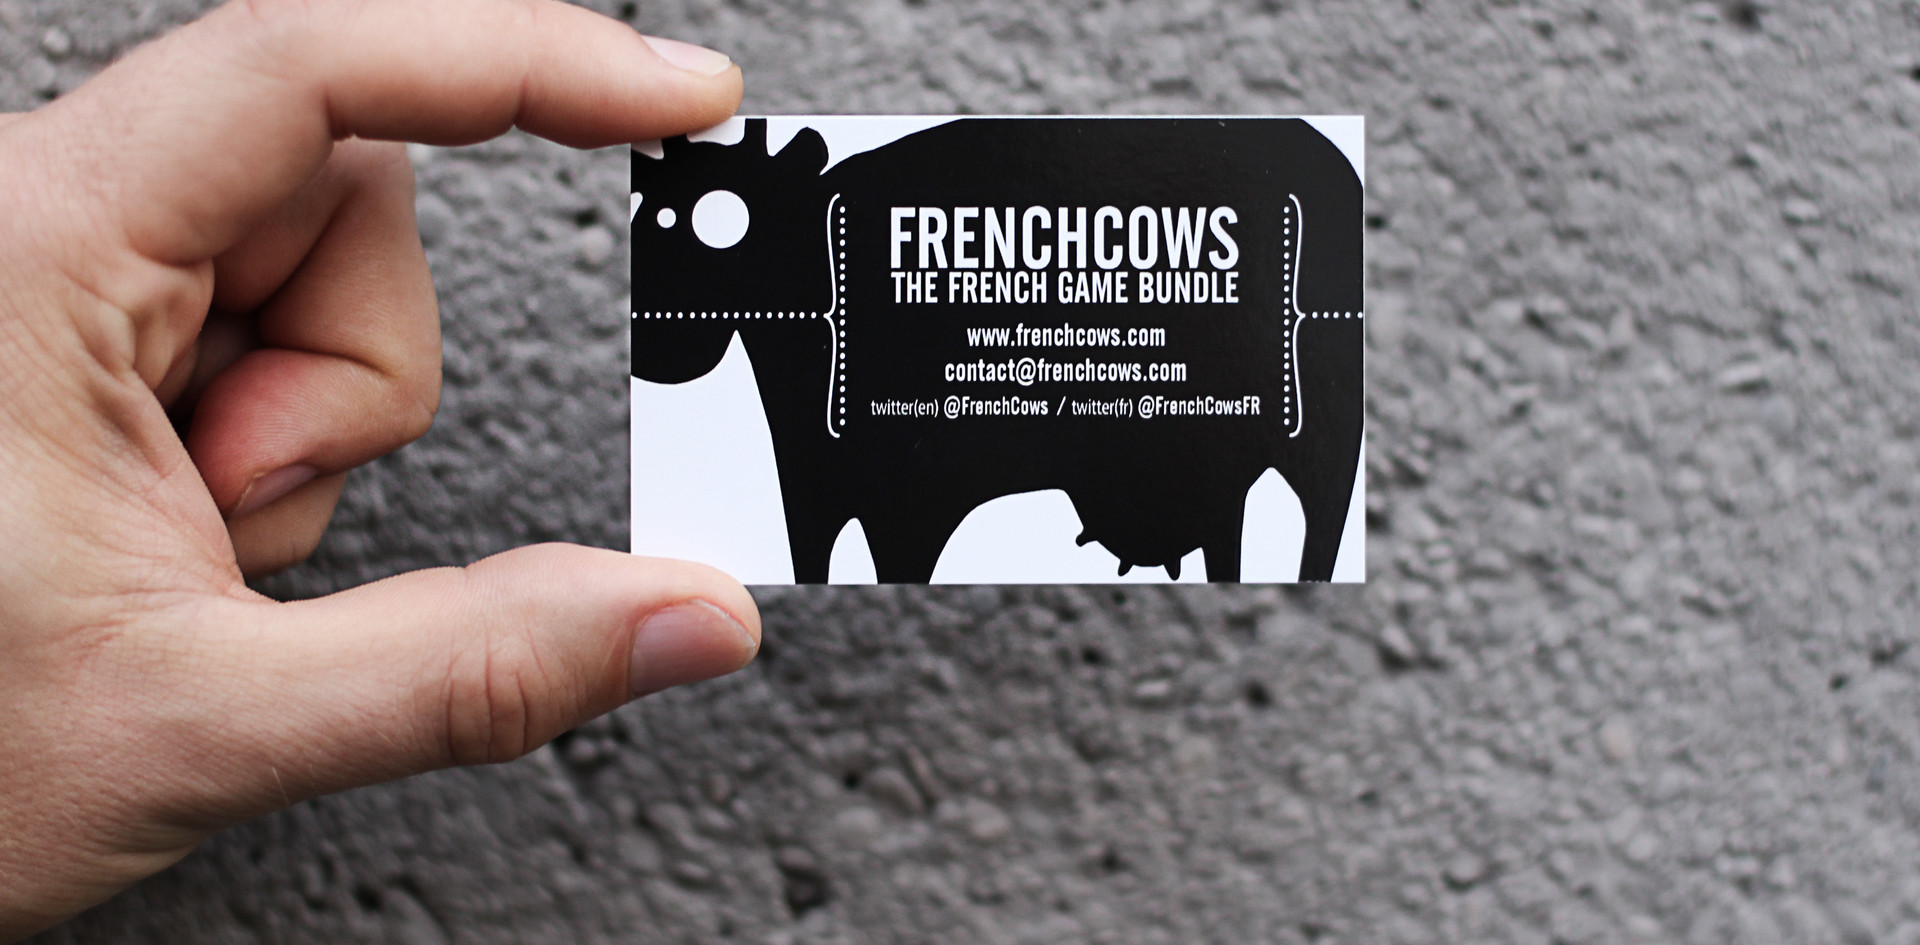 Frenchcows_carte2.jpg